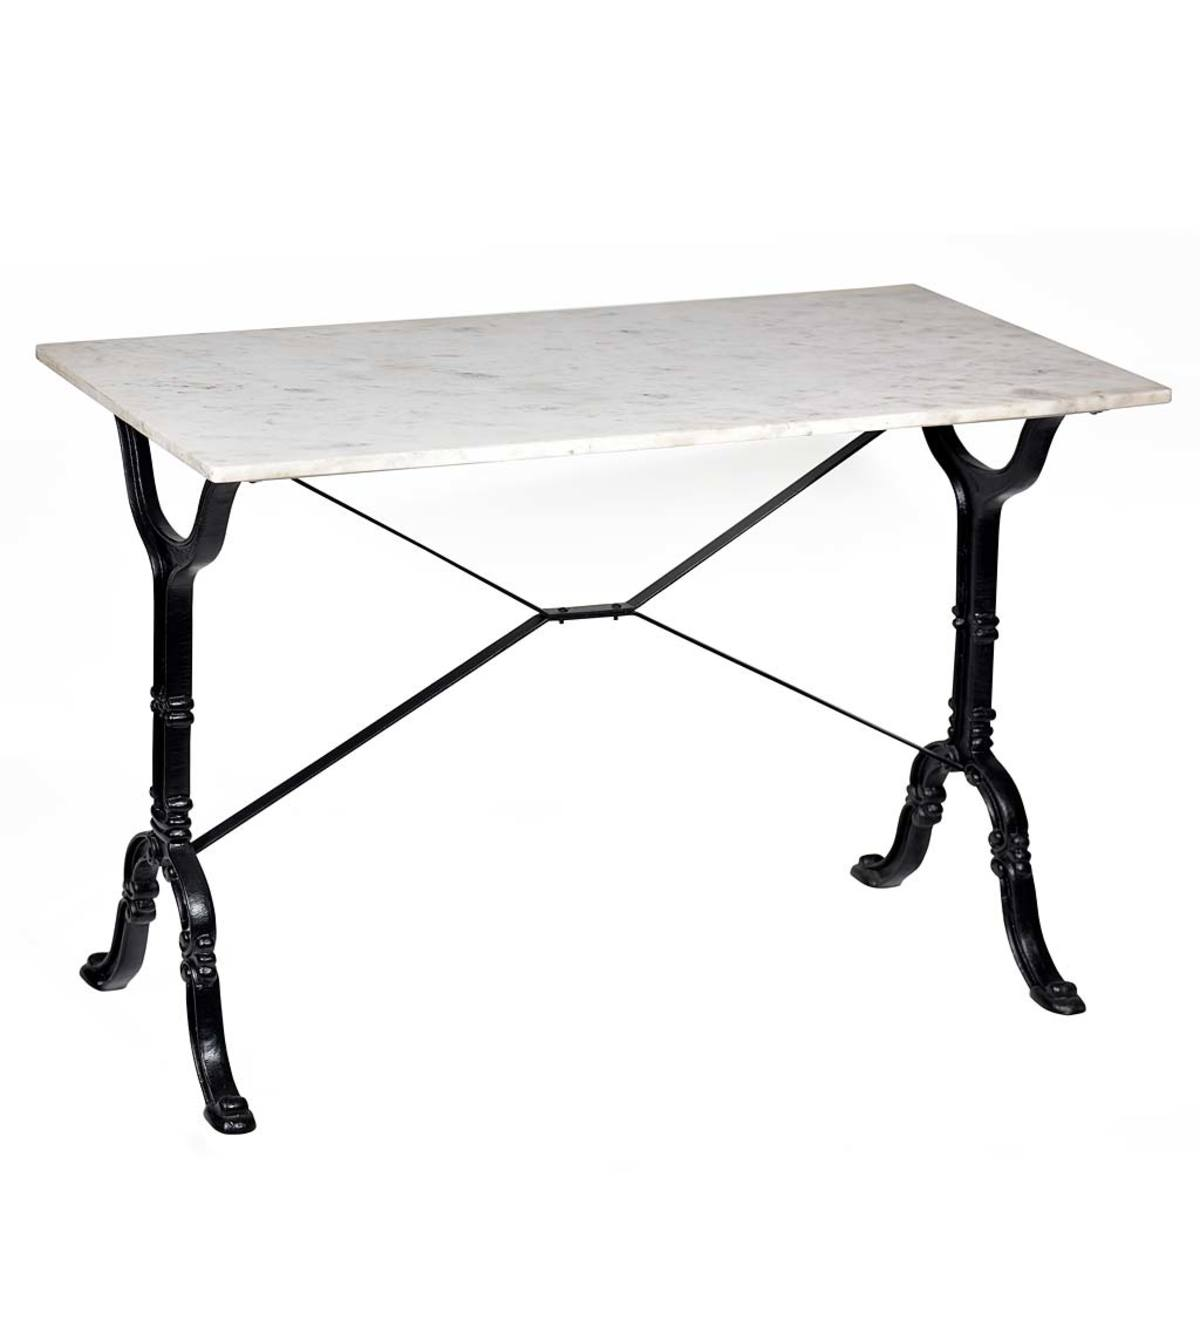 "36""-High Marble-Top Cast Iron Console Table - White"